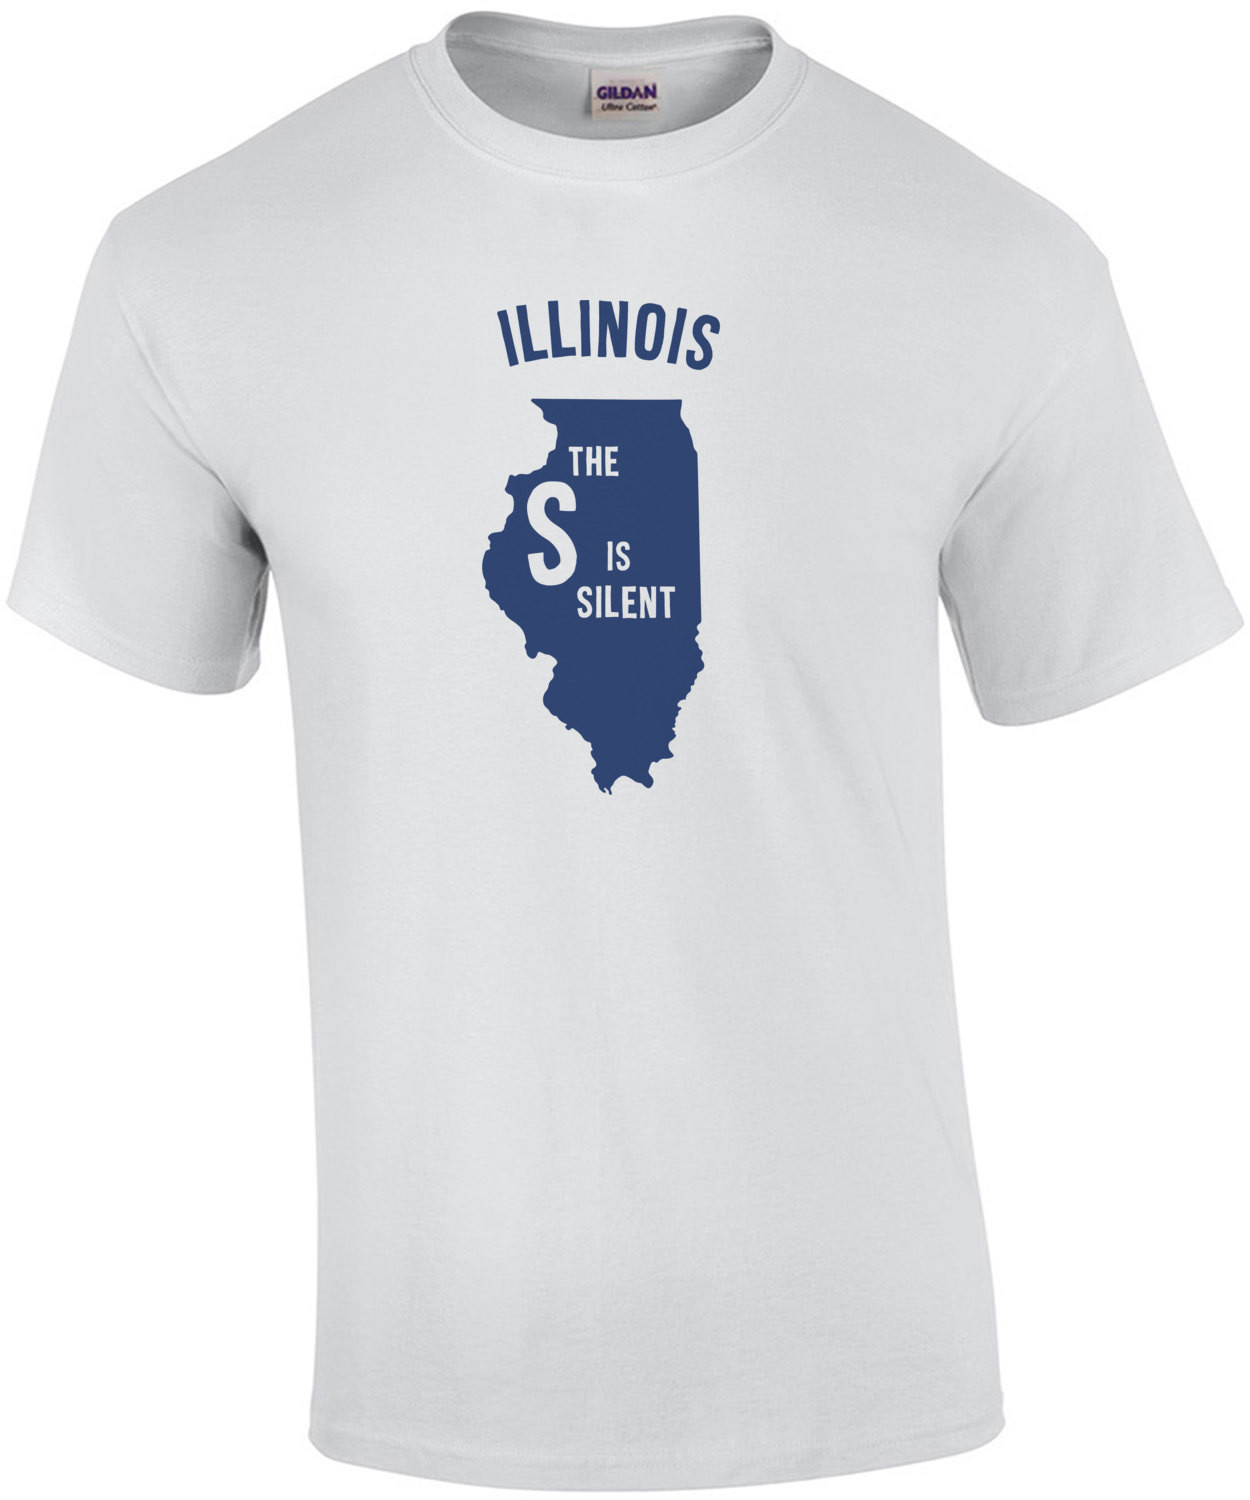 Illinois - the S is Silent - Illinois T-Shirt